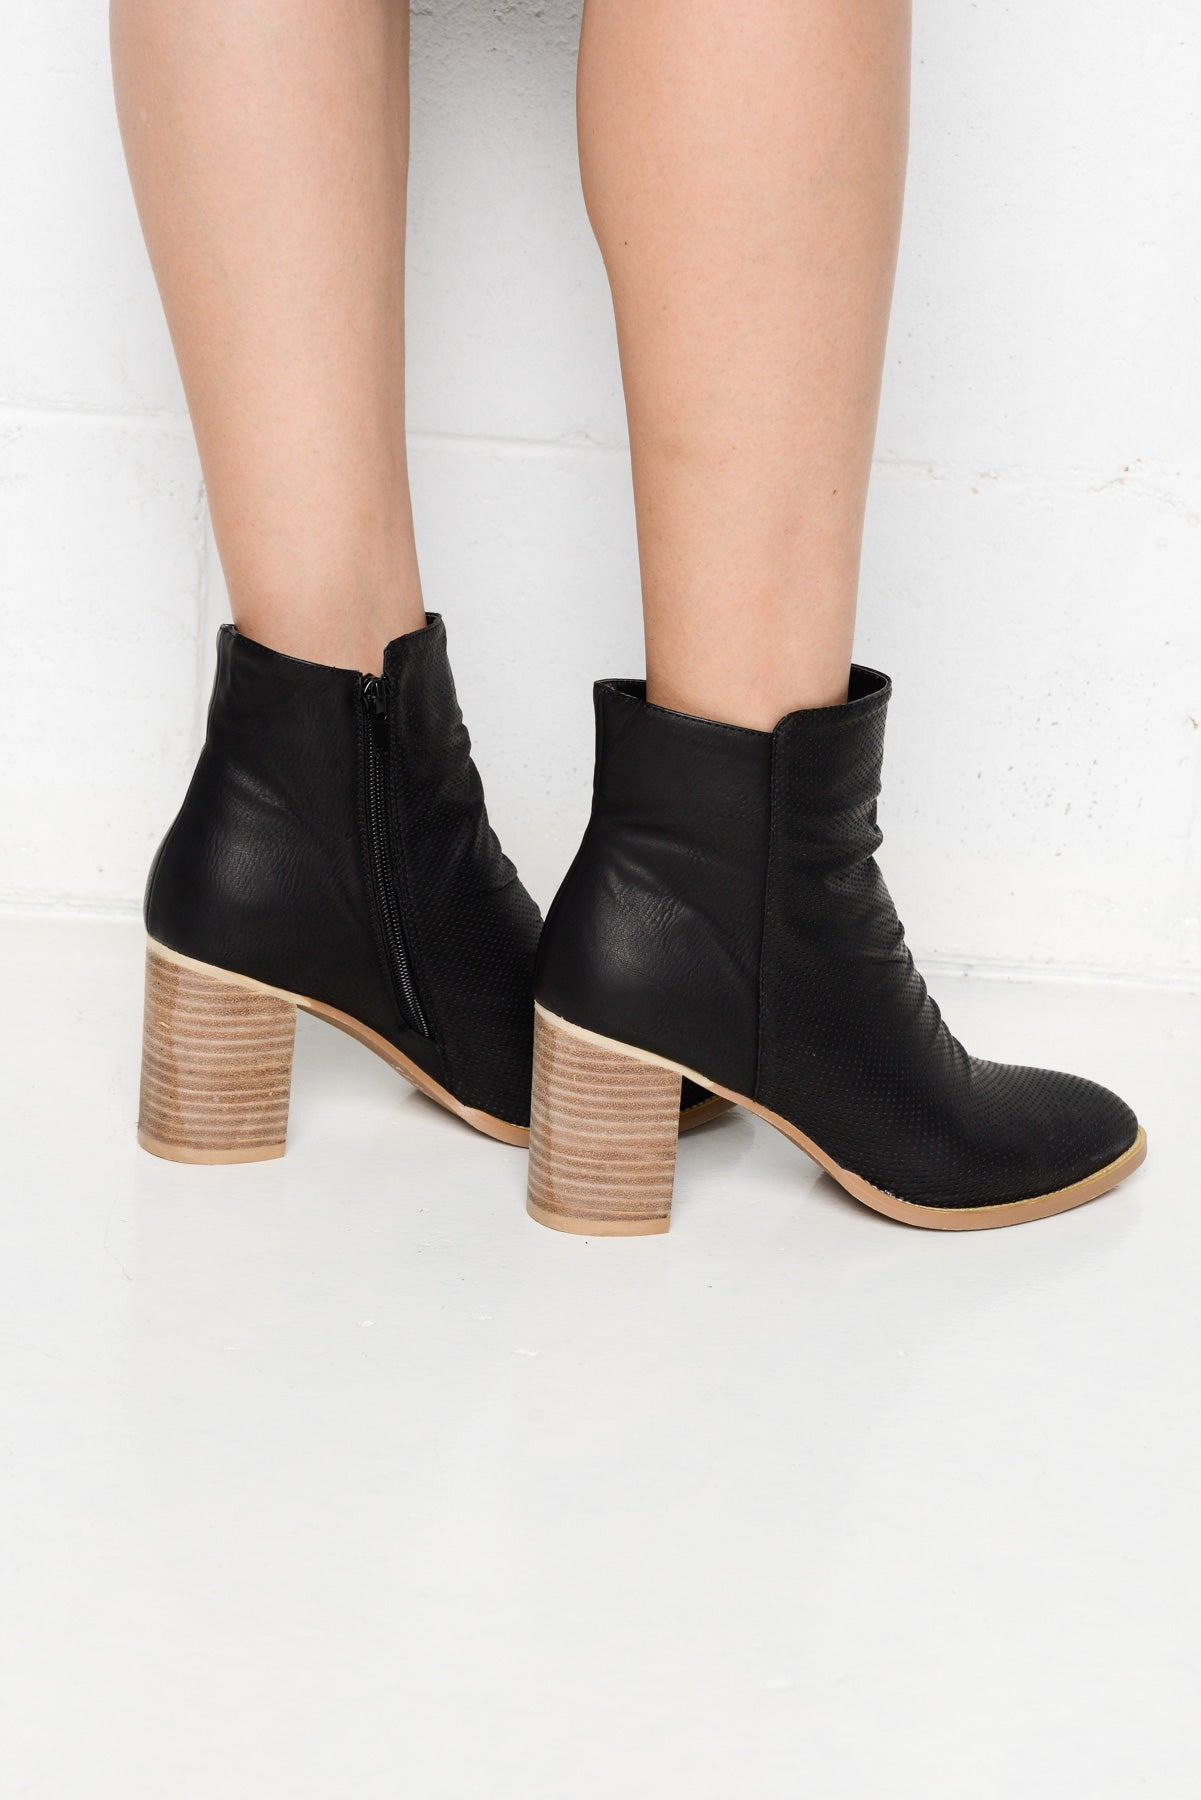 Verity Black Heeled Boot - Blue Bungalow